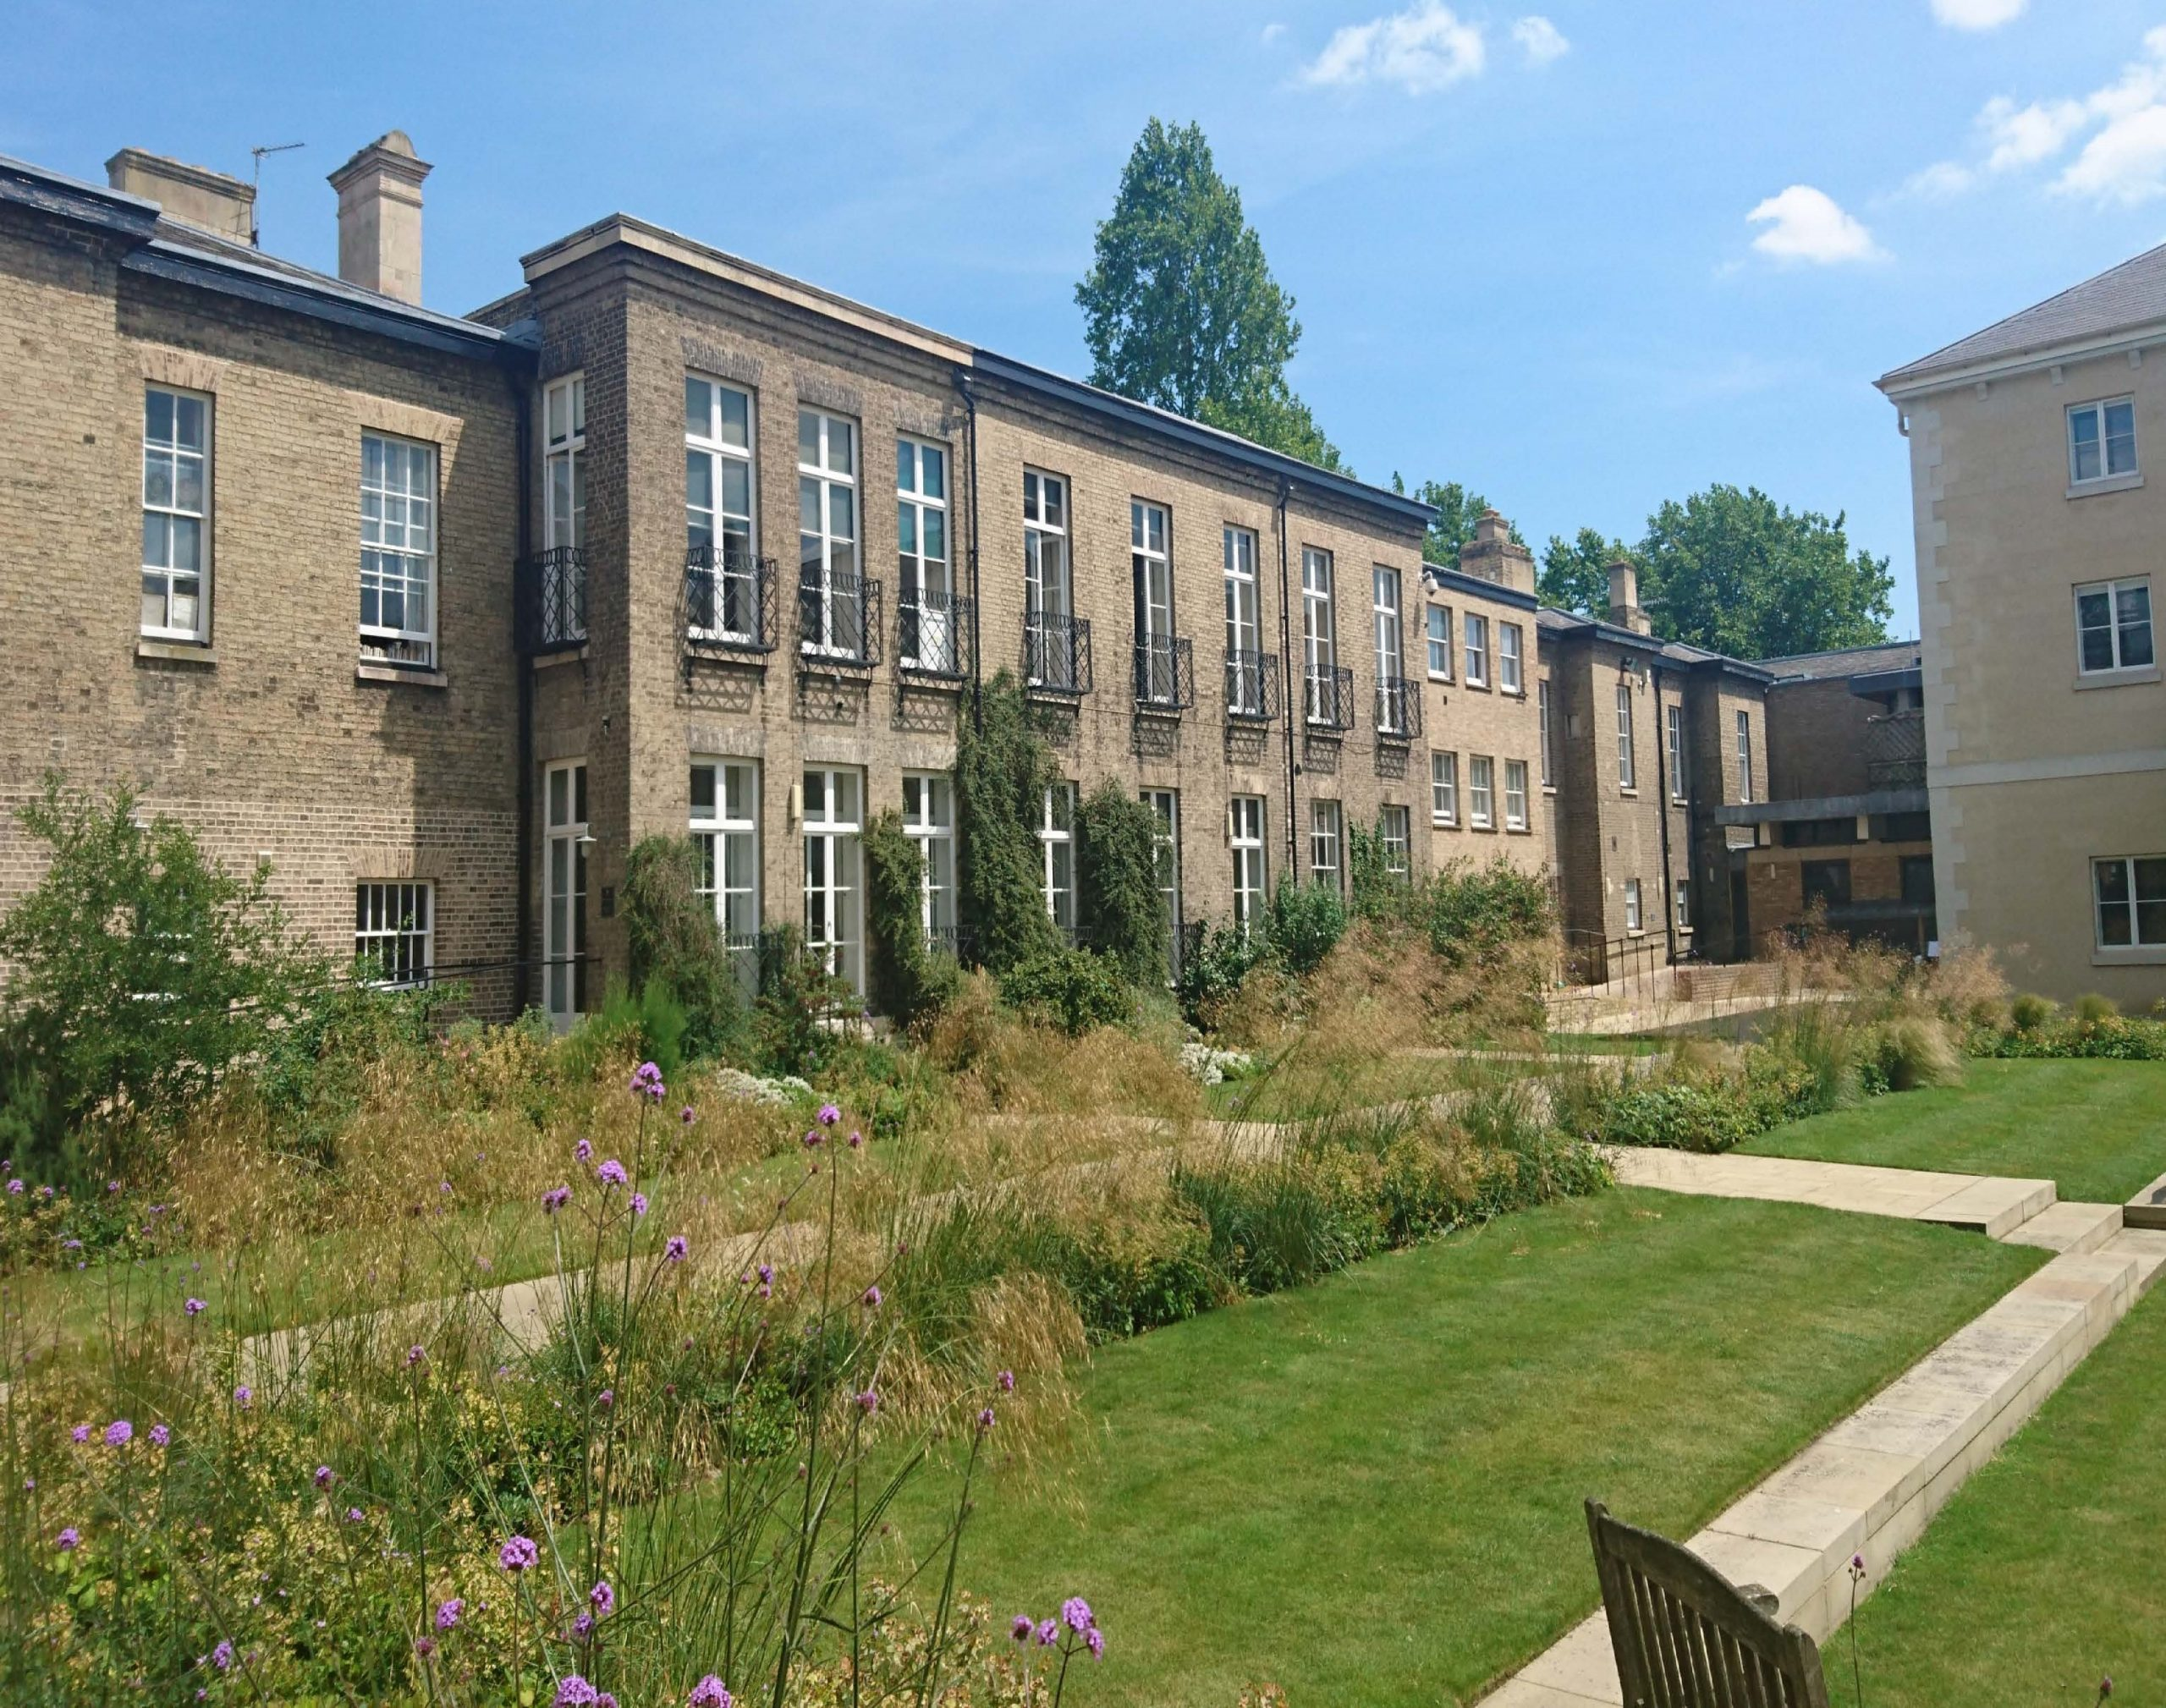 West Lodge, Downing College